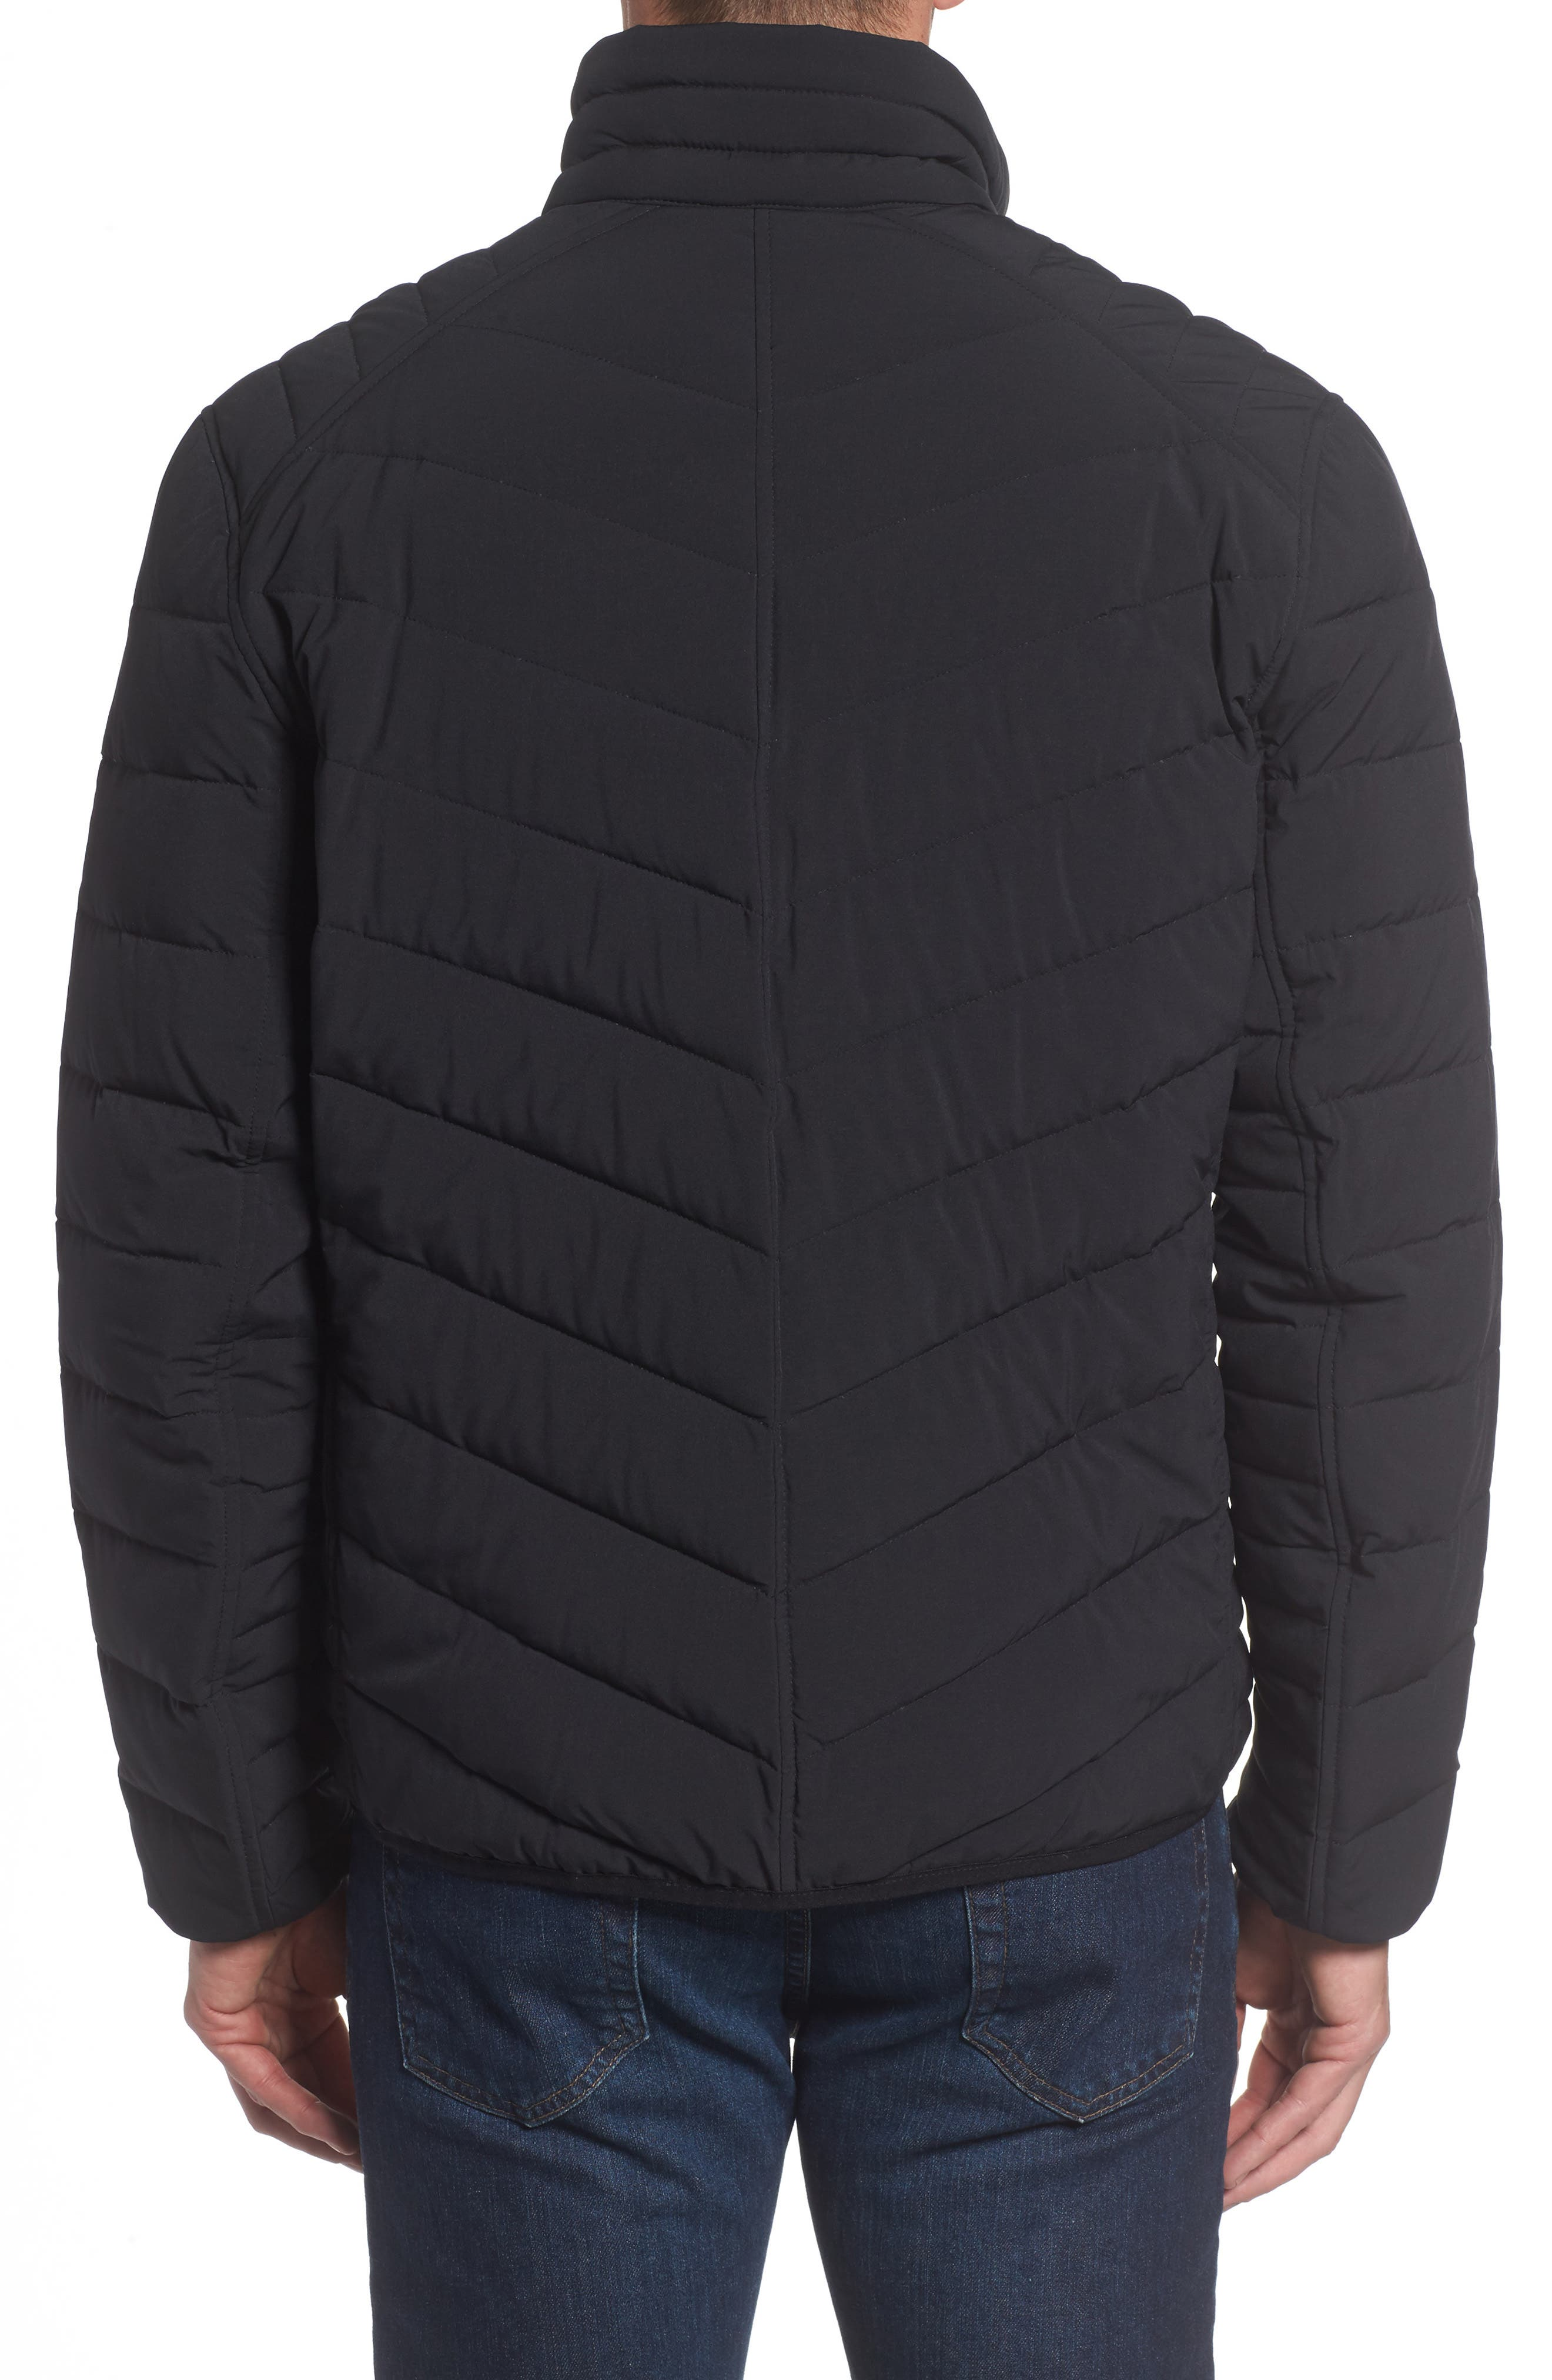 MARC NEW YORK, Bergen Quilted Down Jacket, Alternate thumbnail 2, color, BLACK